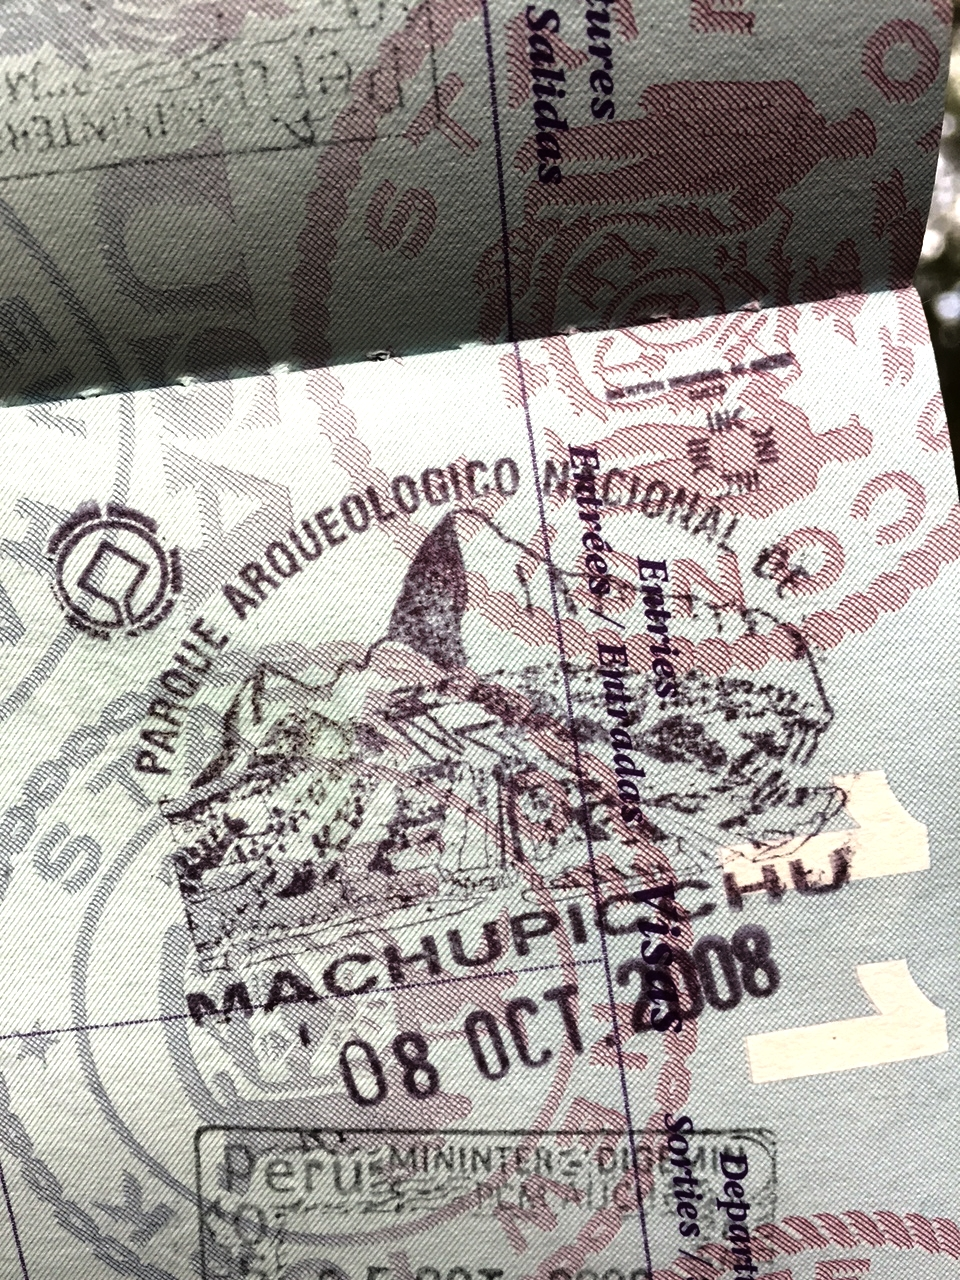 Special Machu Picchu passport stamp